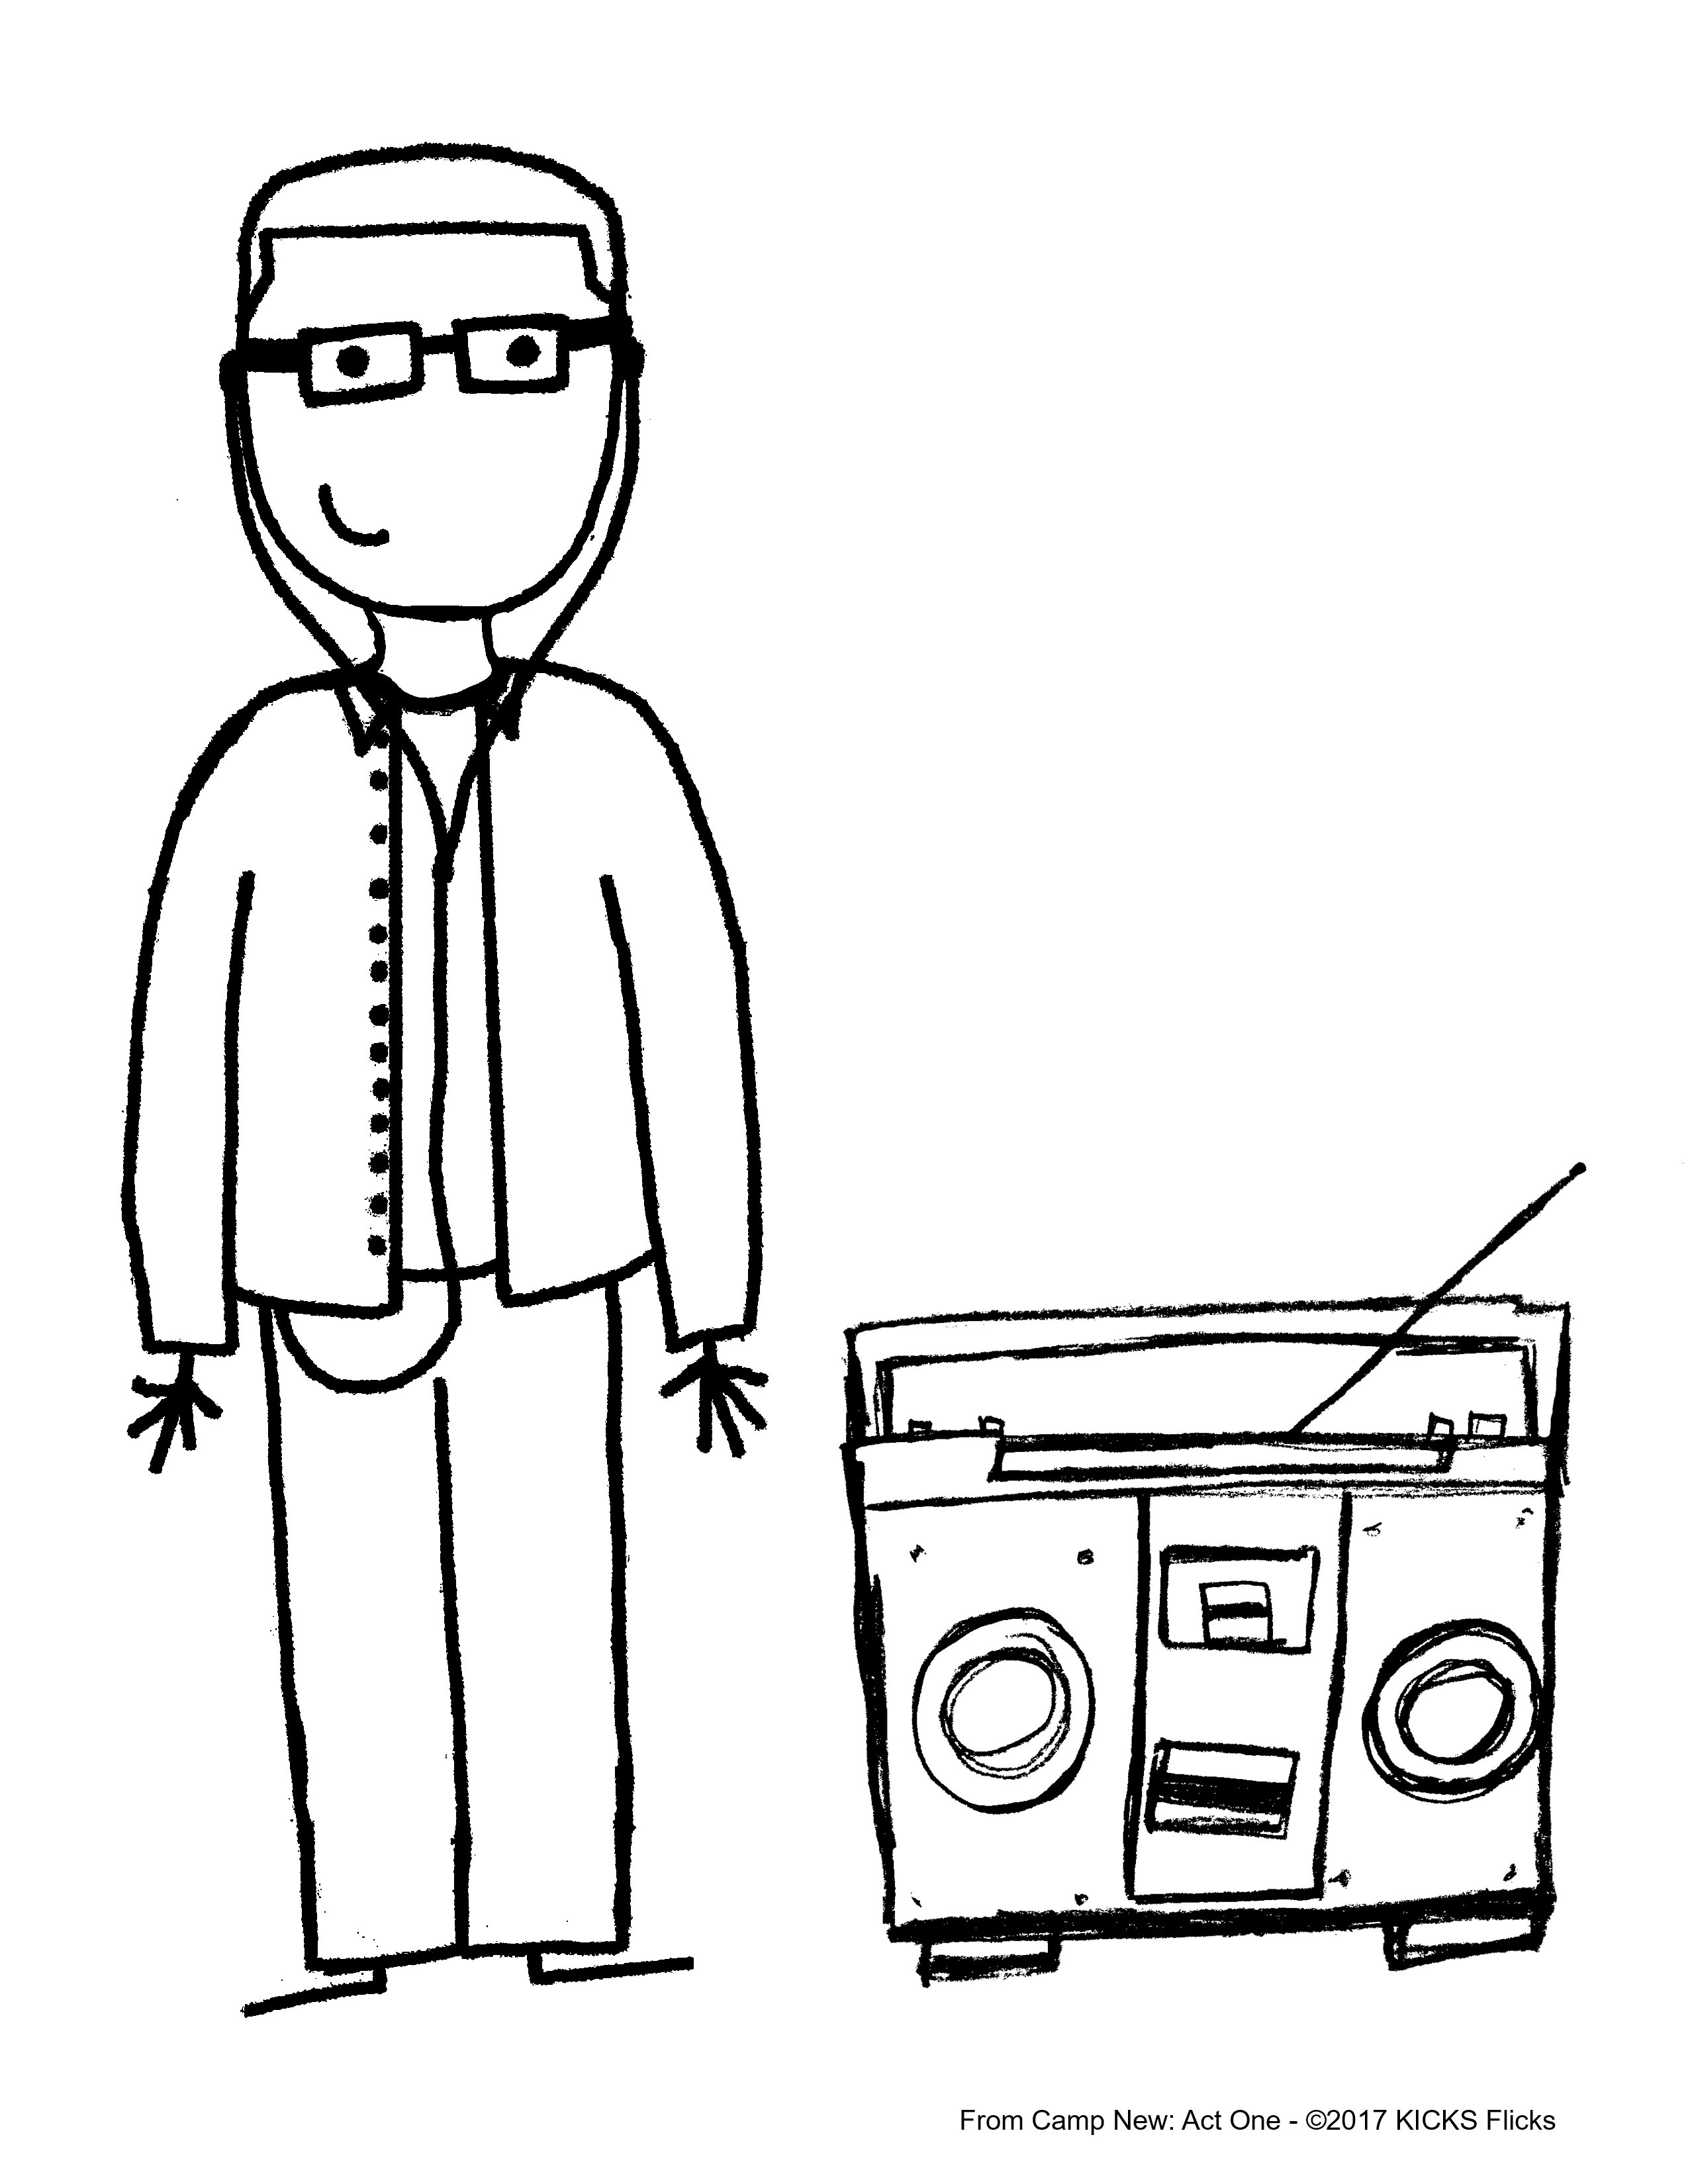 Cool Boombox Coloring Pages Gallery - Entry Level Resume Templates ...